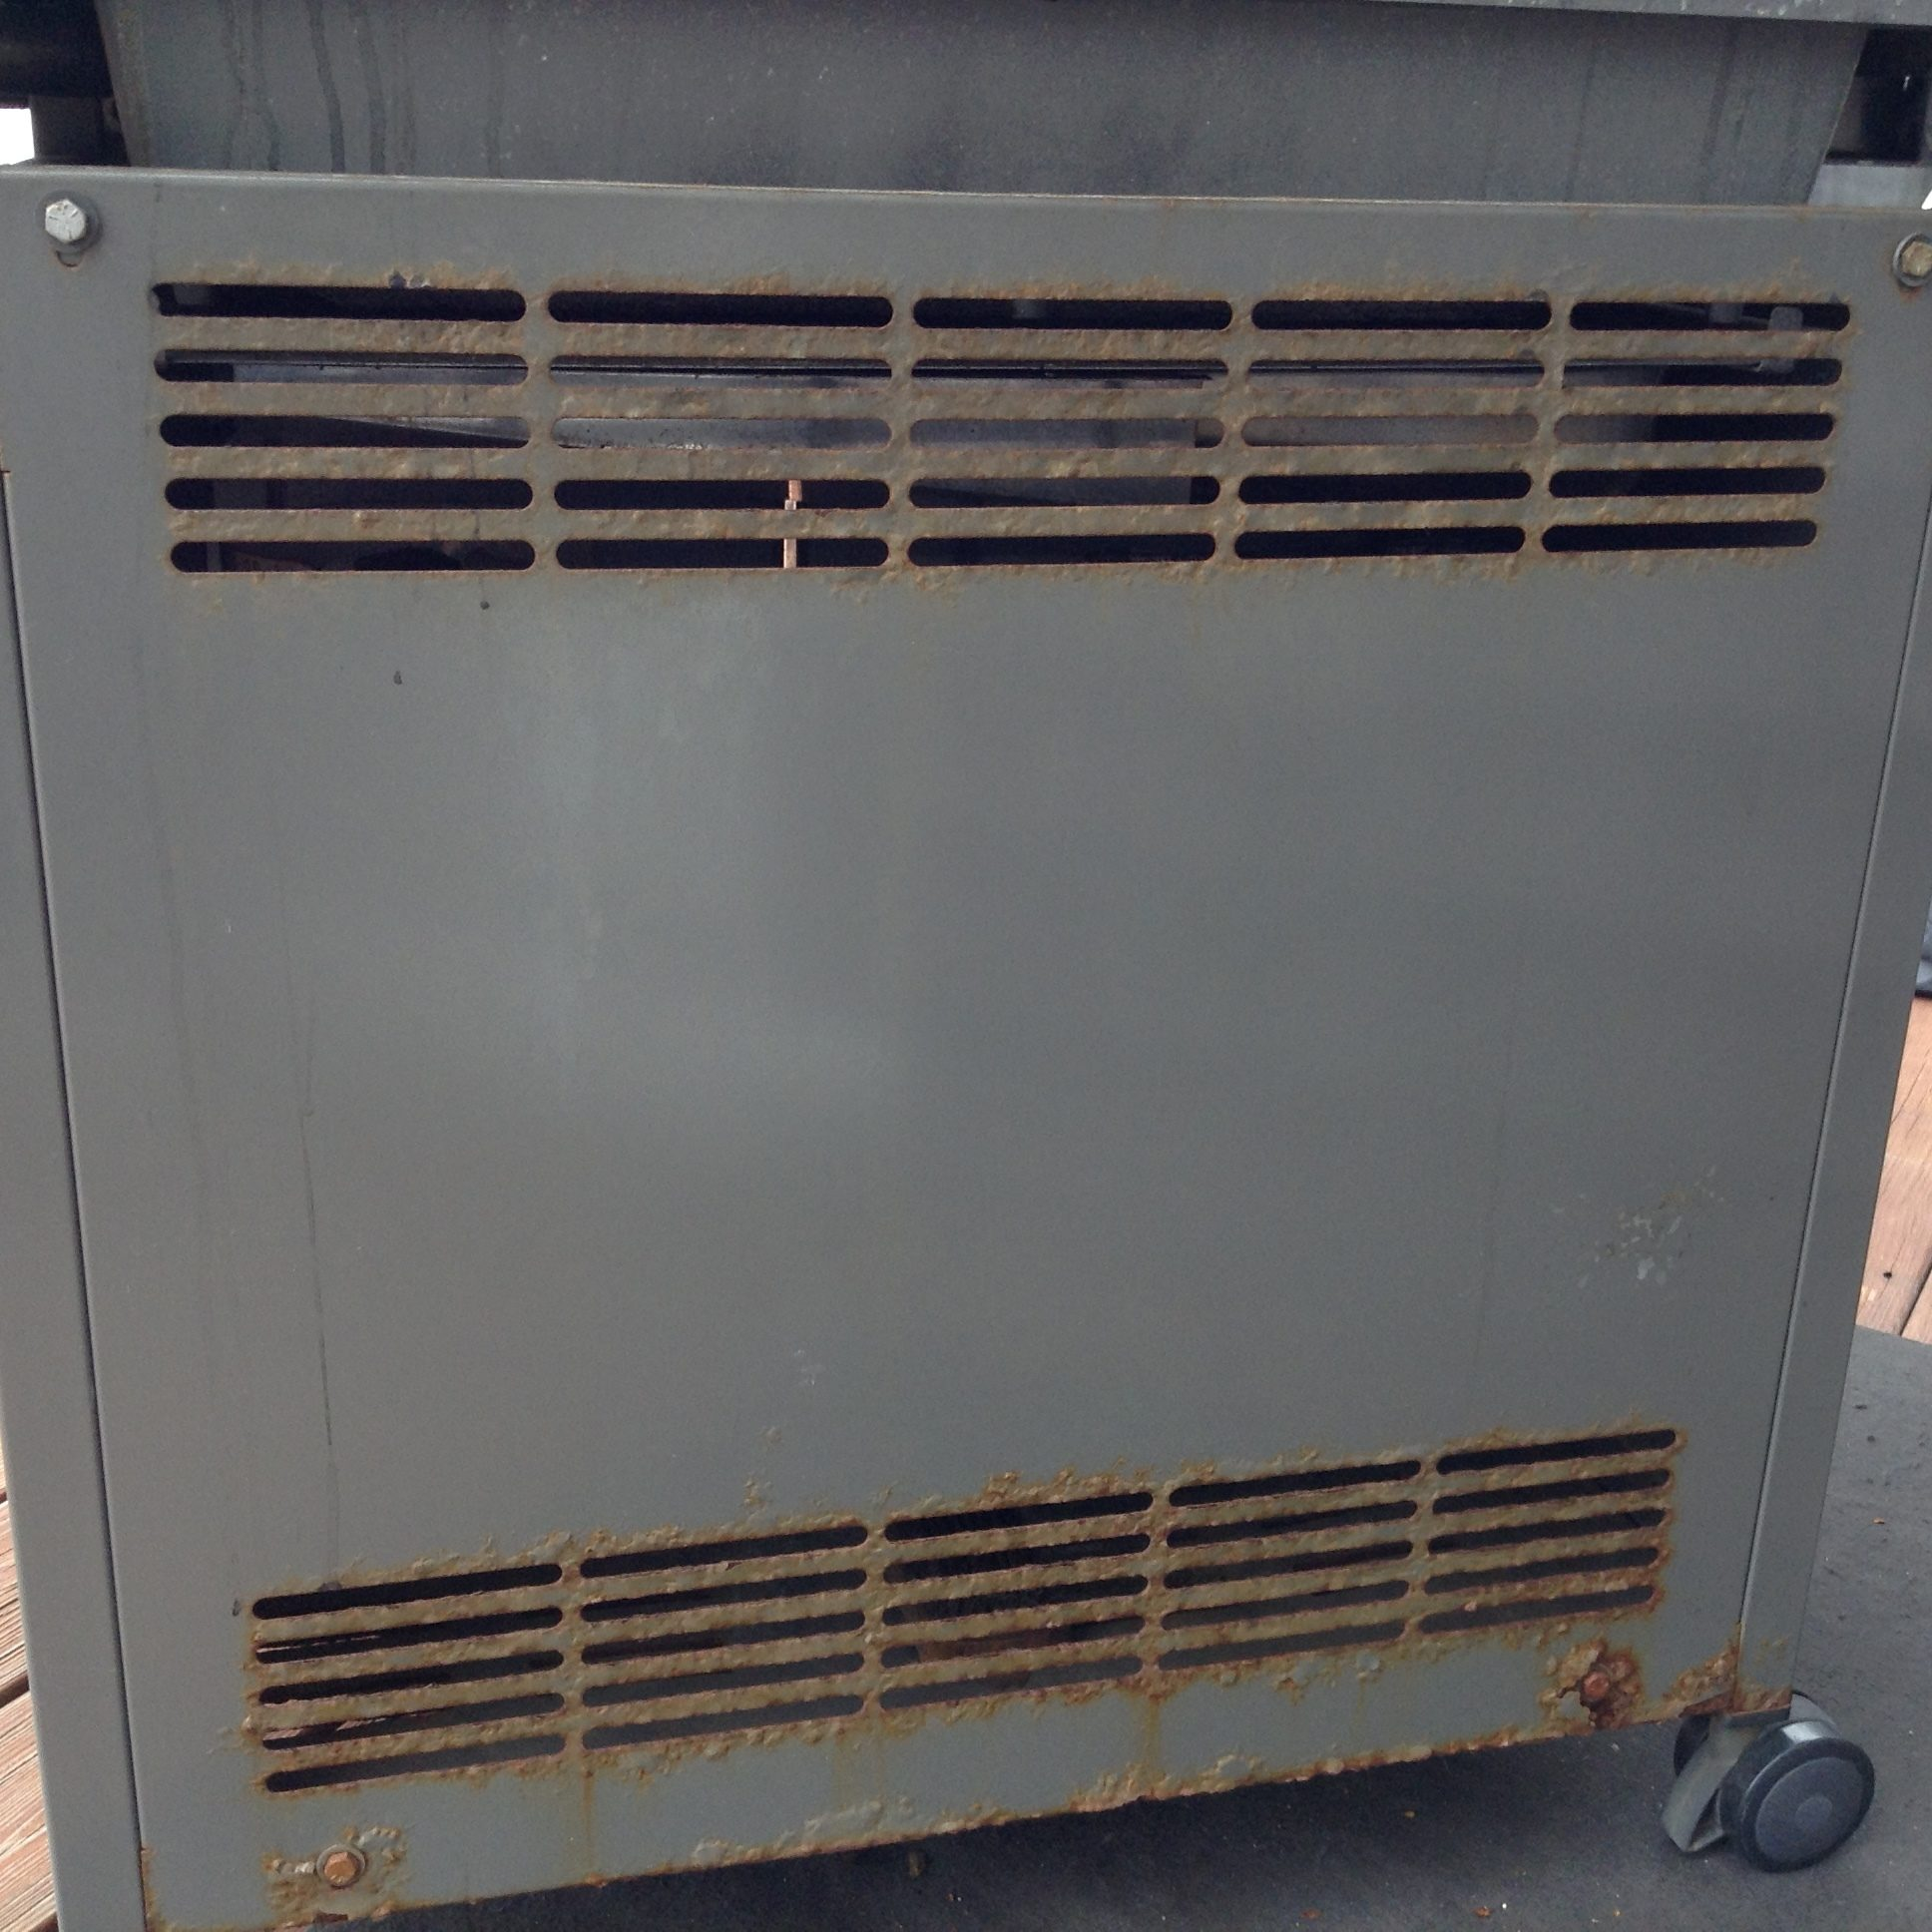 Weber genesis s 330 natural gas - I Purchased My Weber Genesis S 310 In 2011 For 800 00 After 5 Years Of Use The 2 Side Panels The Rear Panel And The Bottom Panel Is Rusting Out